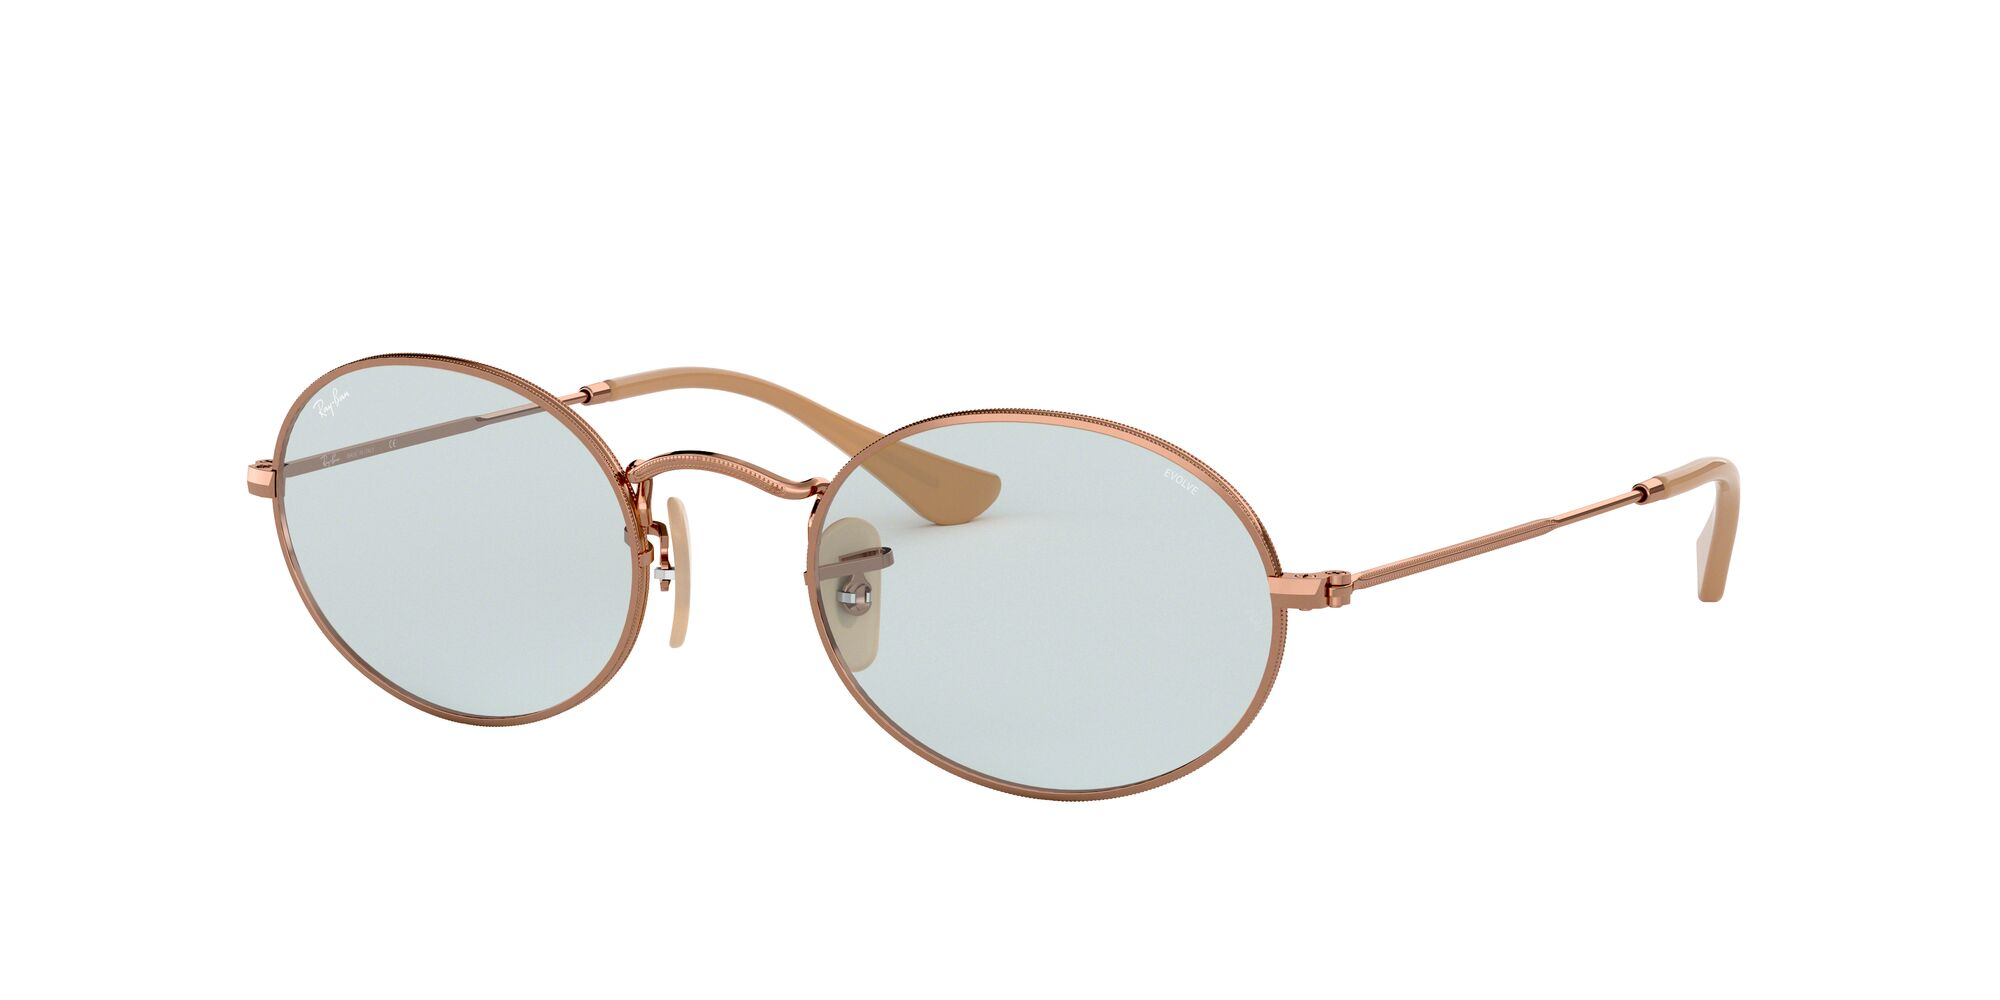 Angle_Left01 Ray-Ban Ray-Ban 0RB3547N 91310Y 51/21 Beige/Blauw